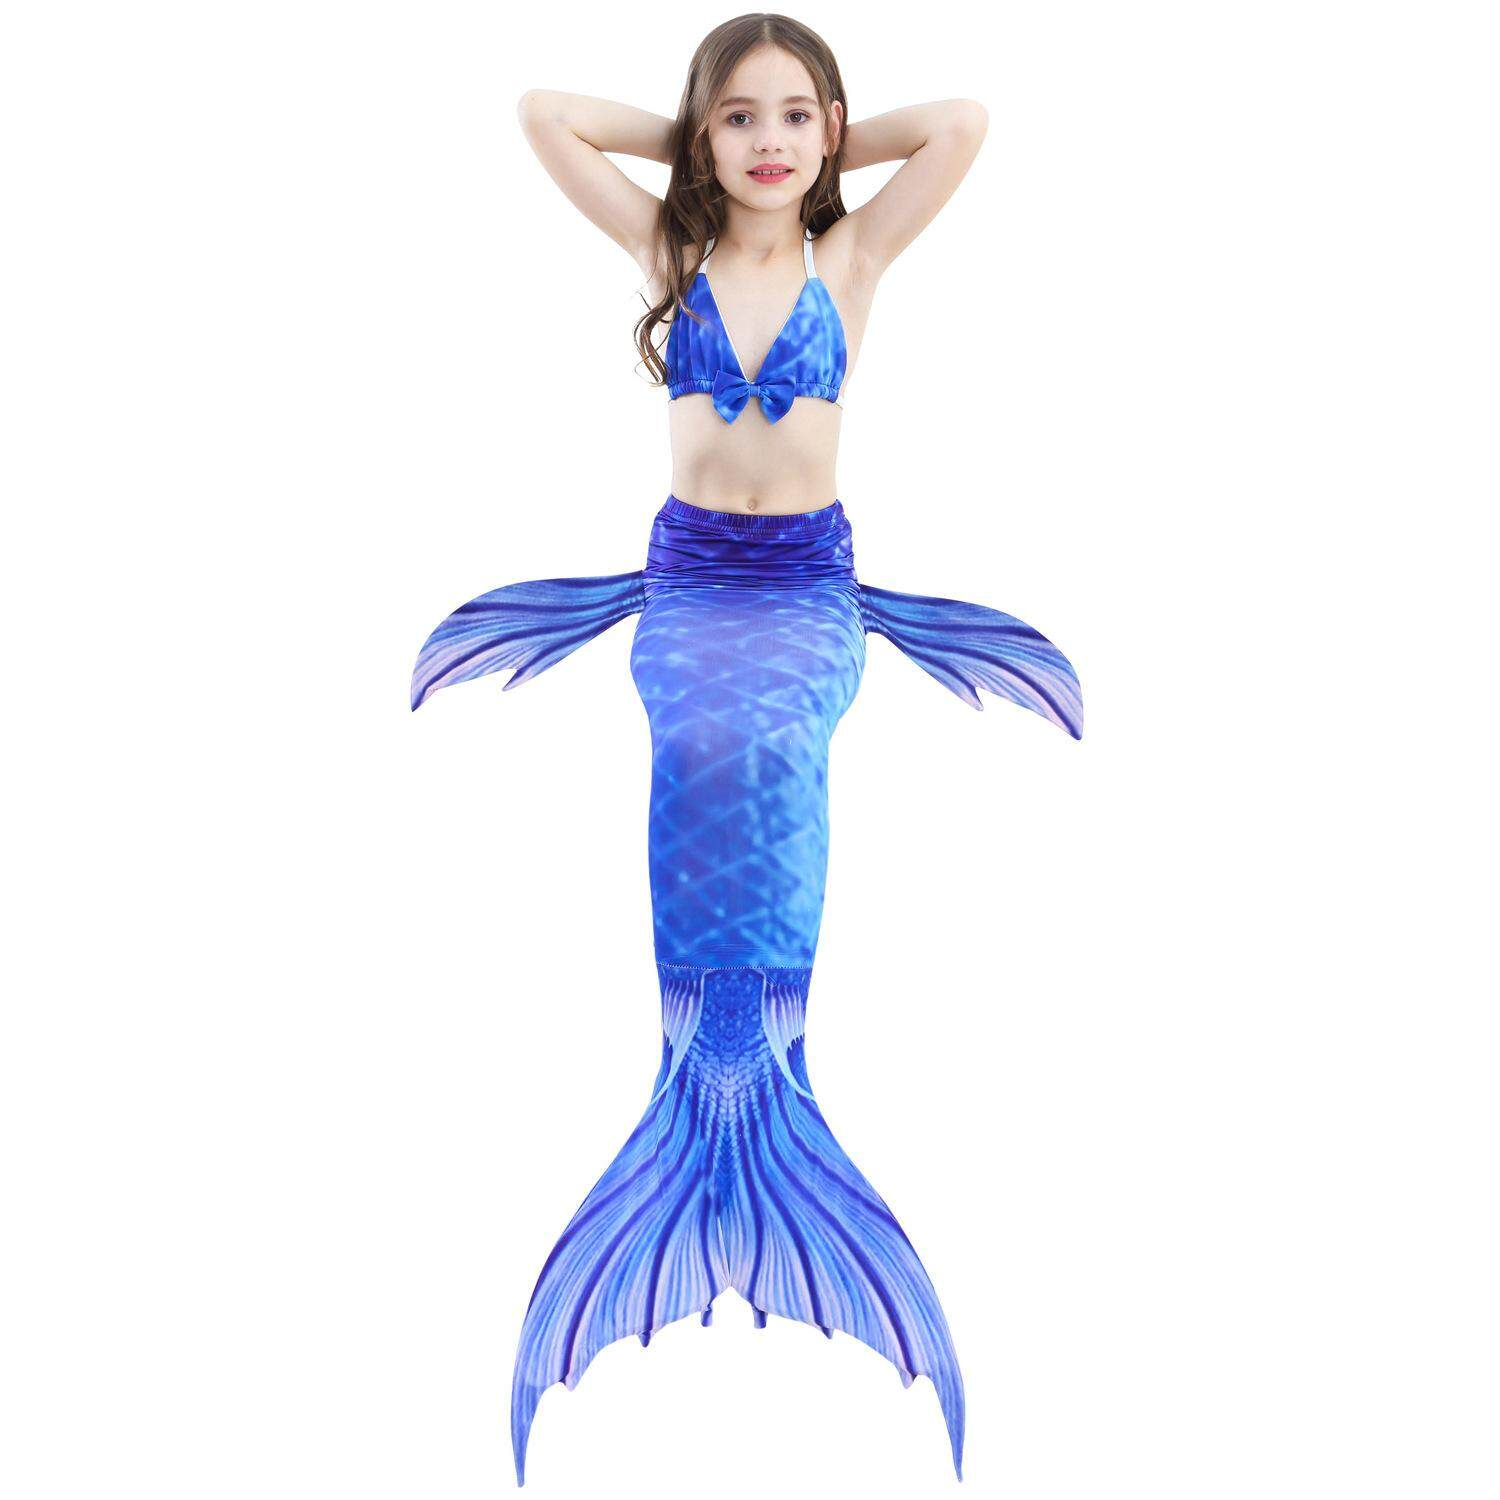 Girls Swimsuits for sale - Swimsuits for Girls online brands prices ...